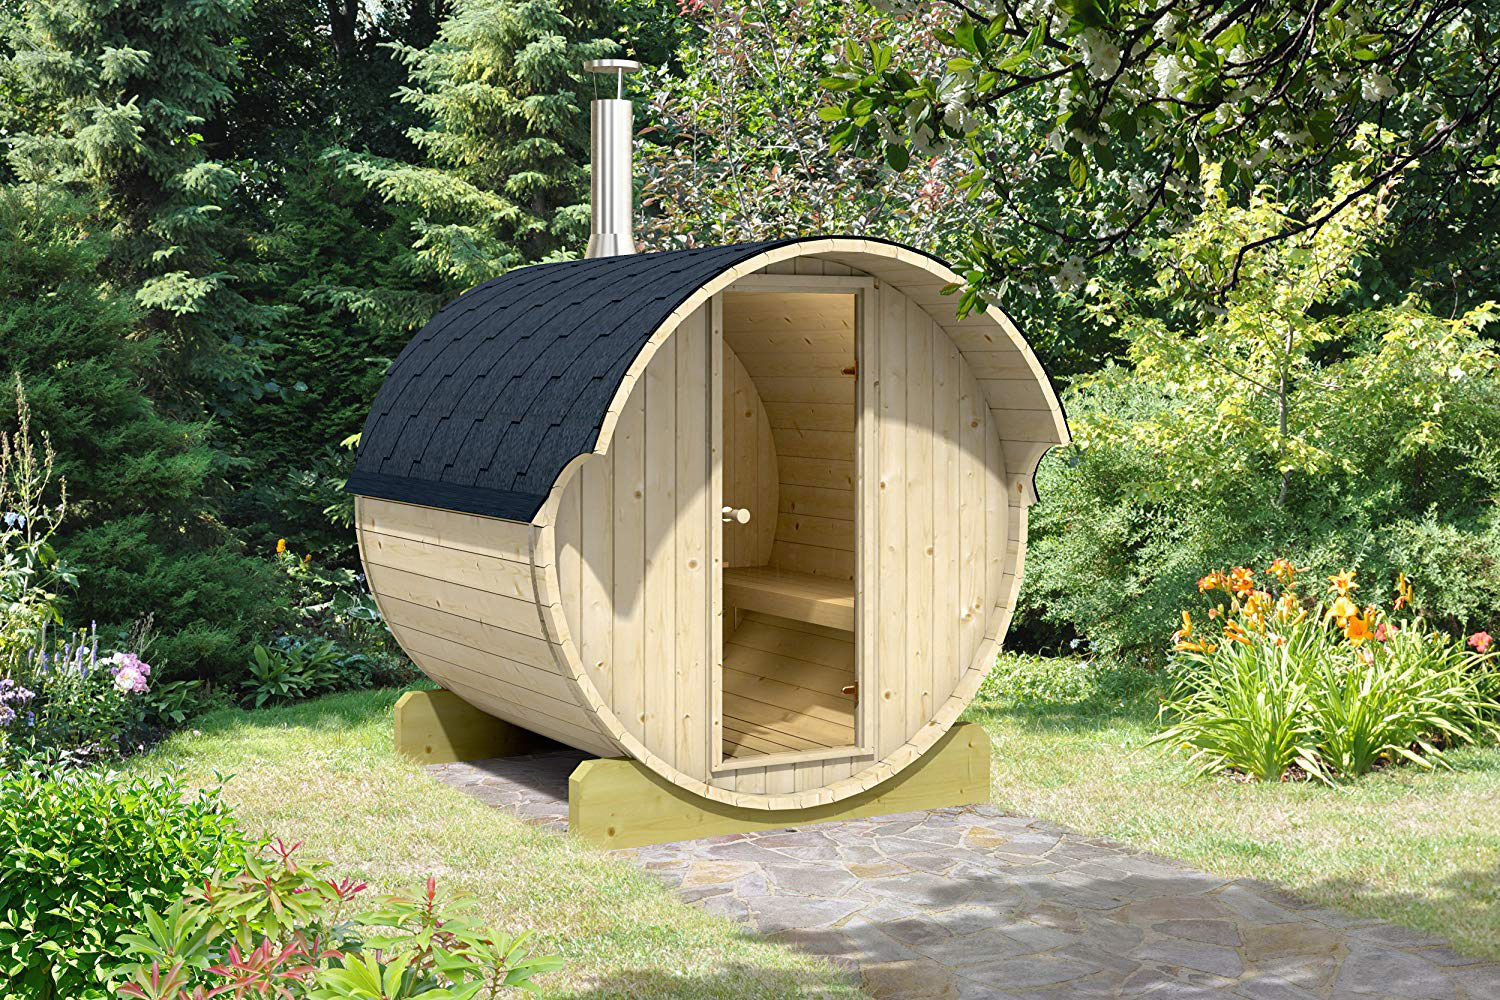 Amazon Is Selling a DIY Backyard Sauna from the Same Makers of the Tiny House that Went Viral